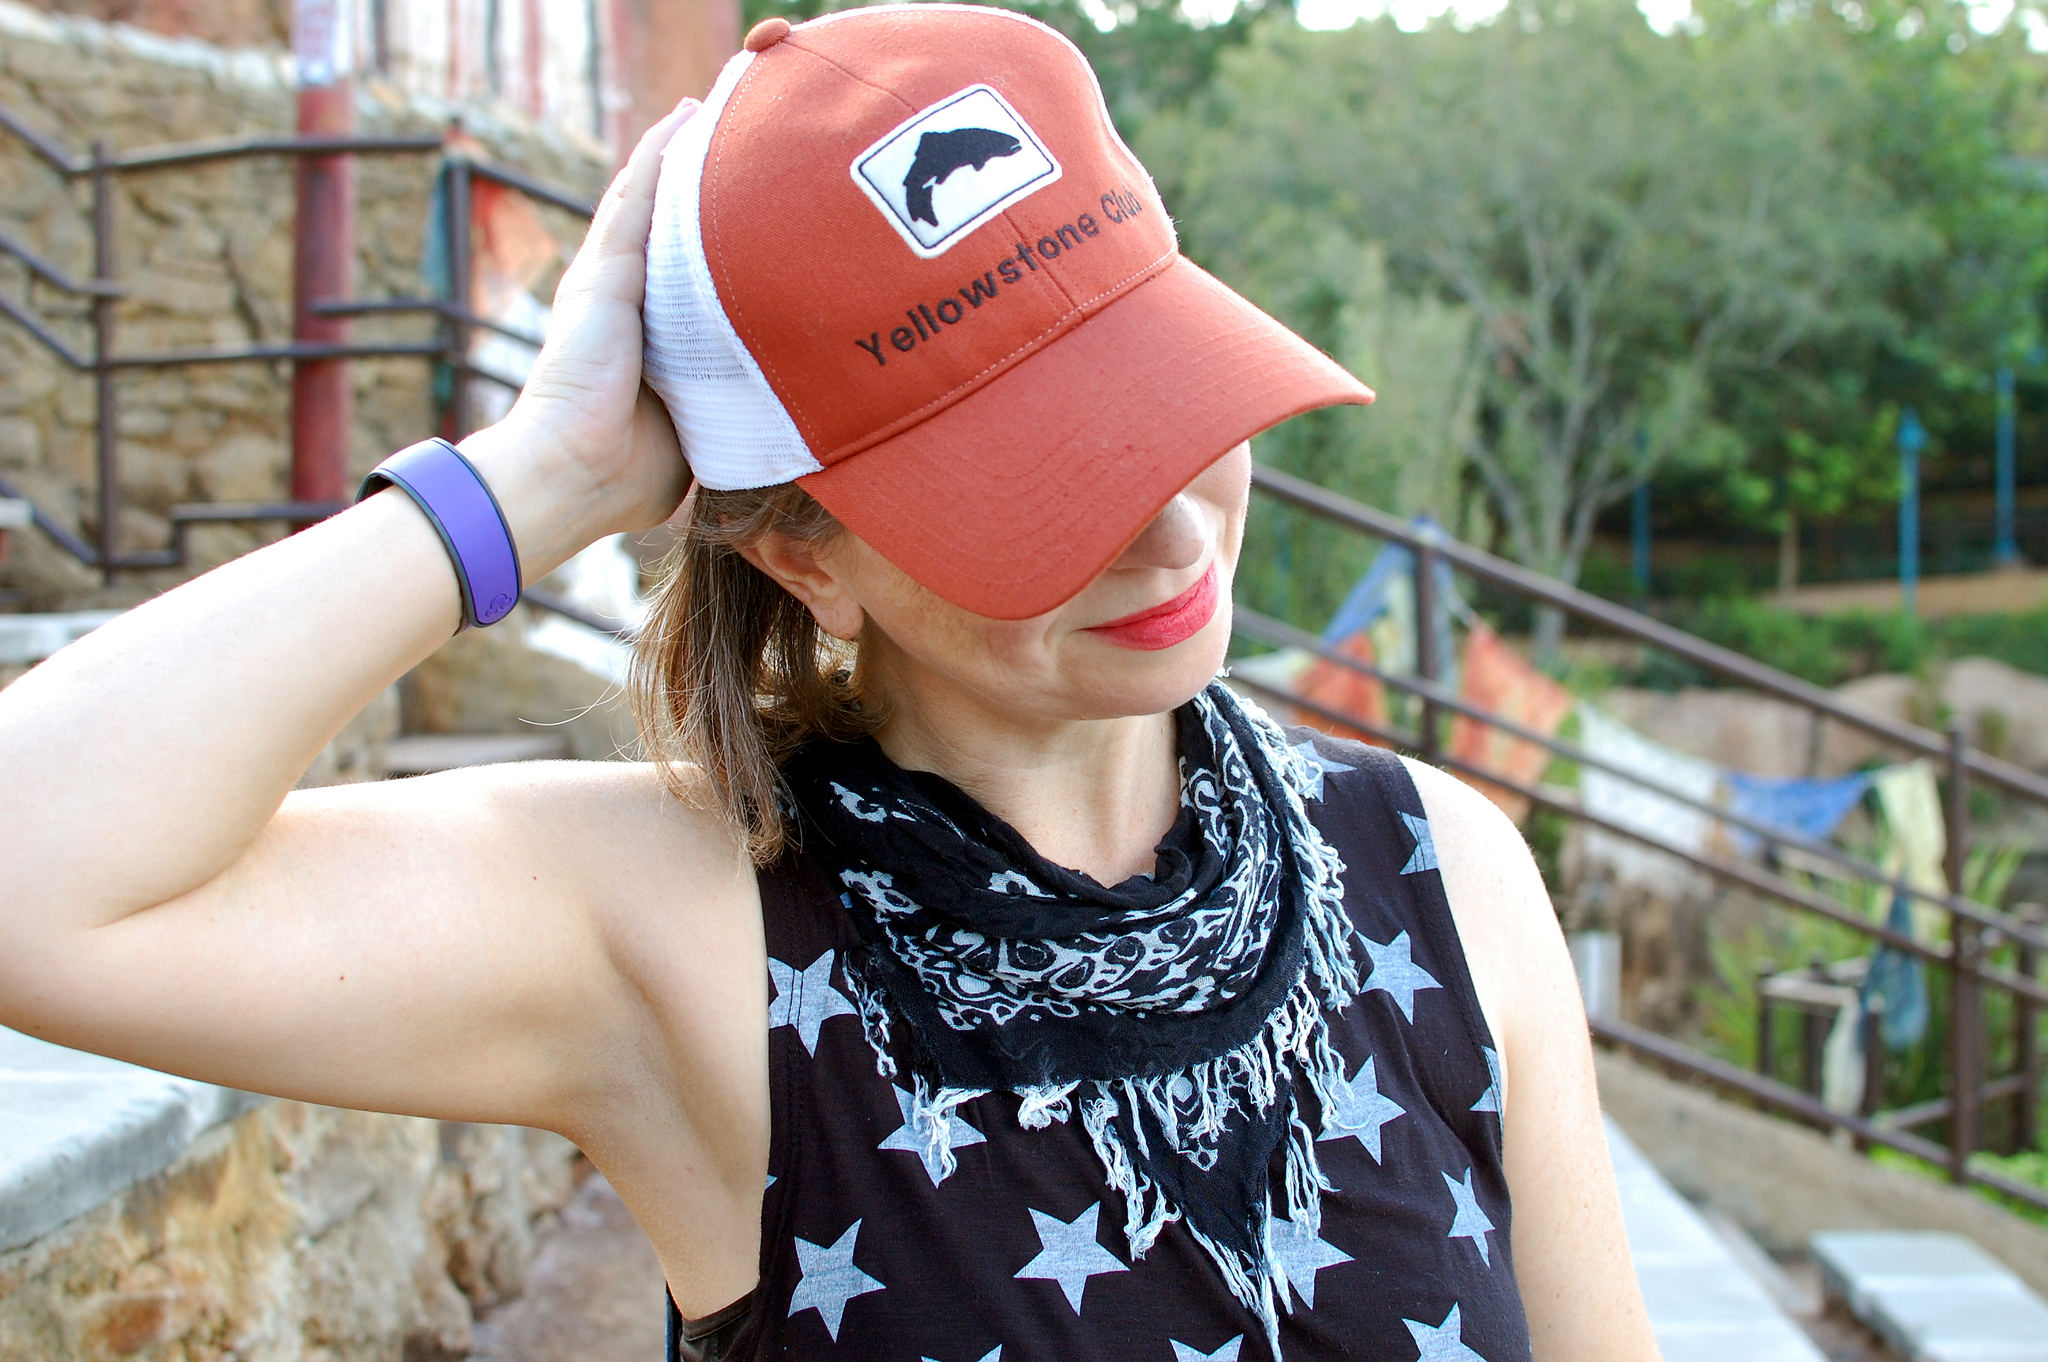 yellowstone club hat bandana star print tank daily outfit blog ootd whatiwore2day